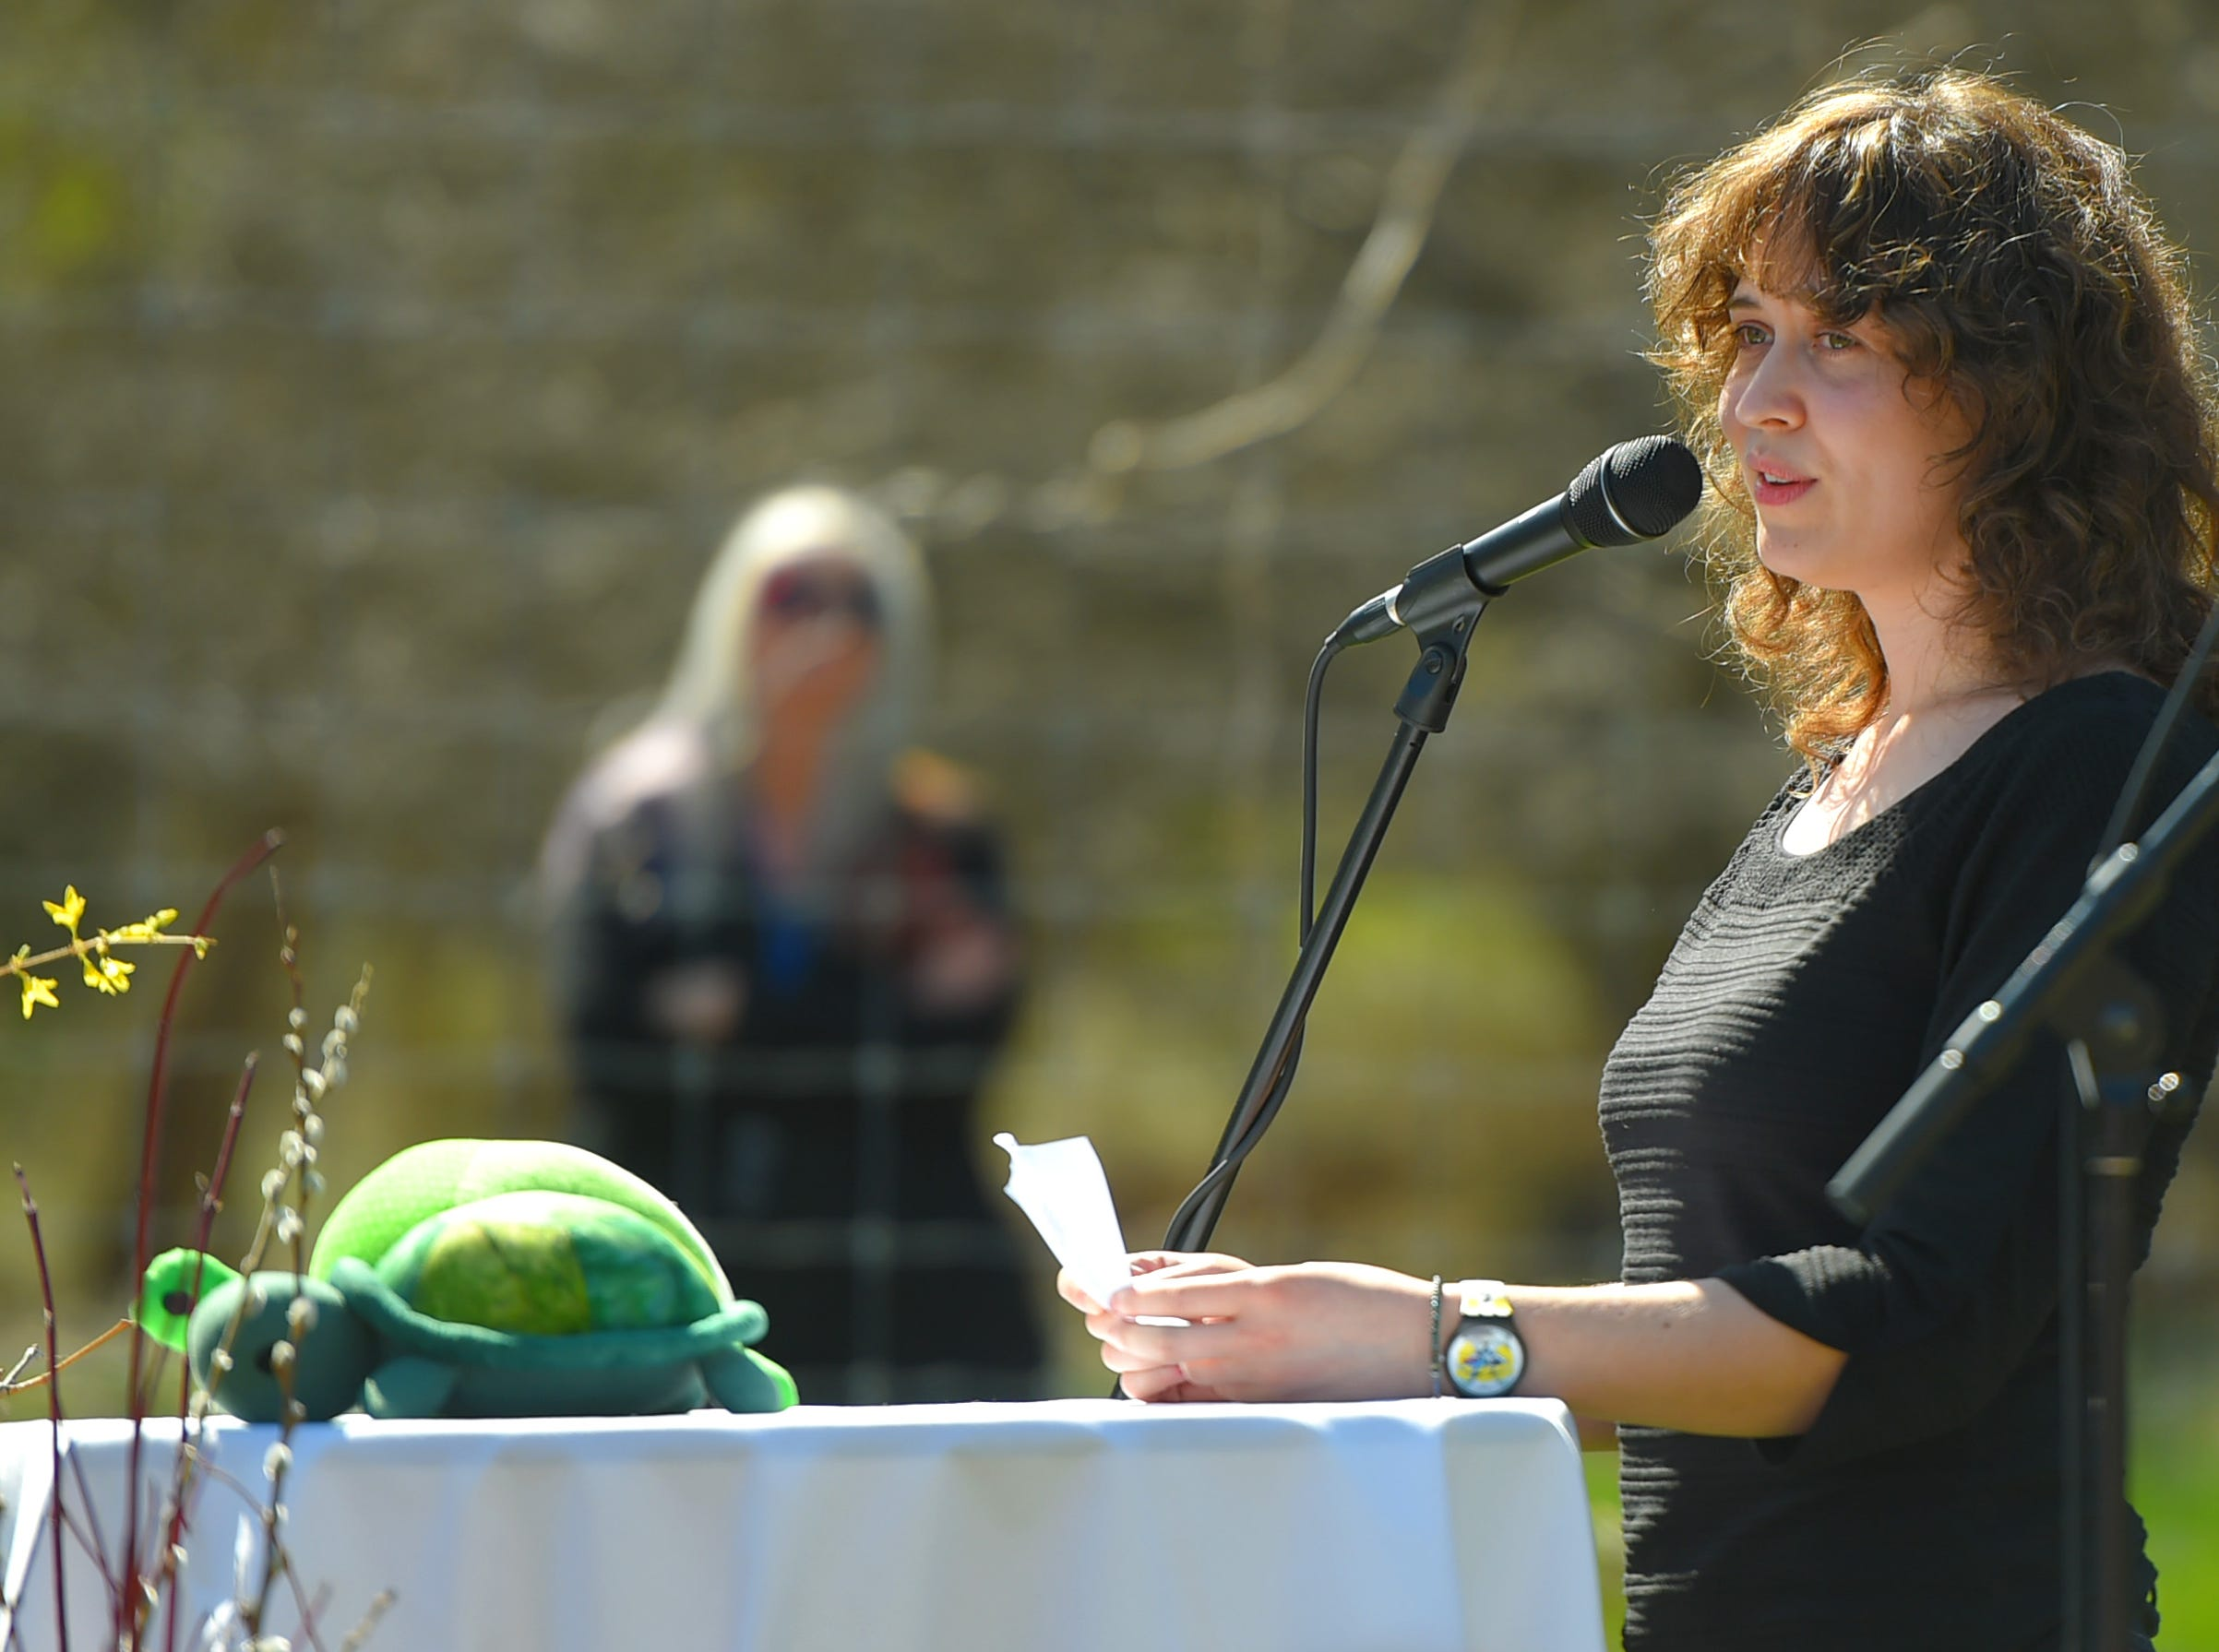 Rebecca Spiro, daughter of Kathleen Downes, remembers her late mother at the Ithaca Children's Garden on April 17, 2019. Downes, a beloved Ithaca teacher, died unexpectedly last week in a car accident.